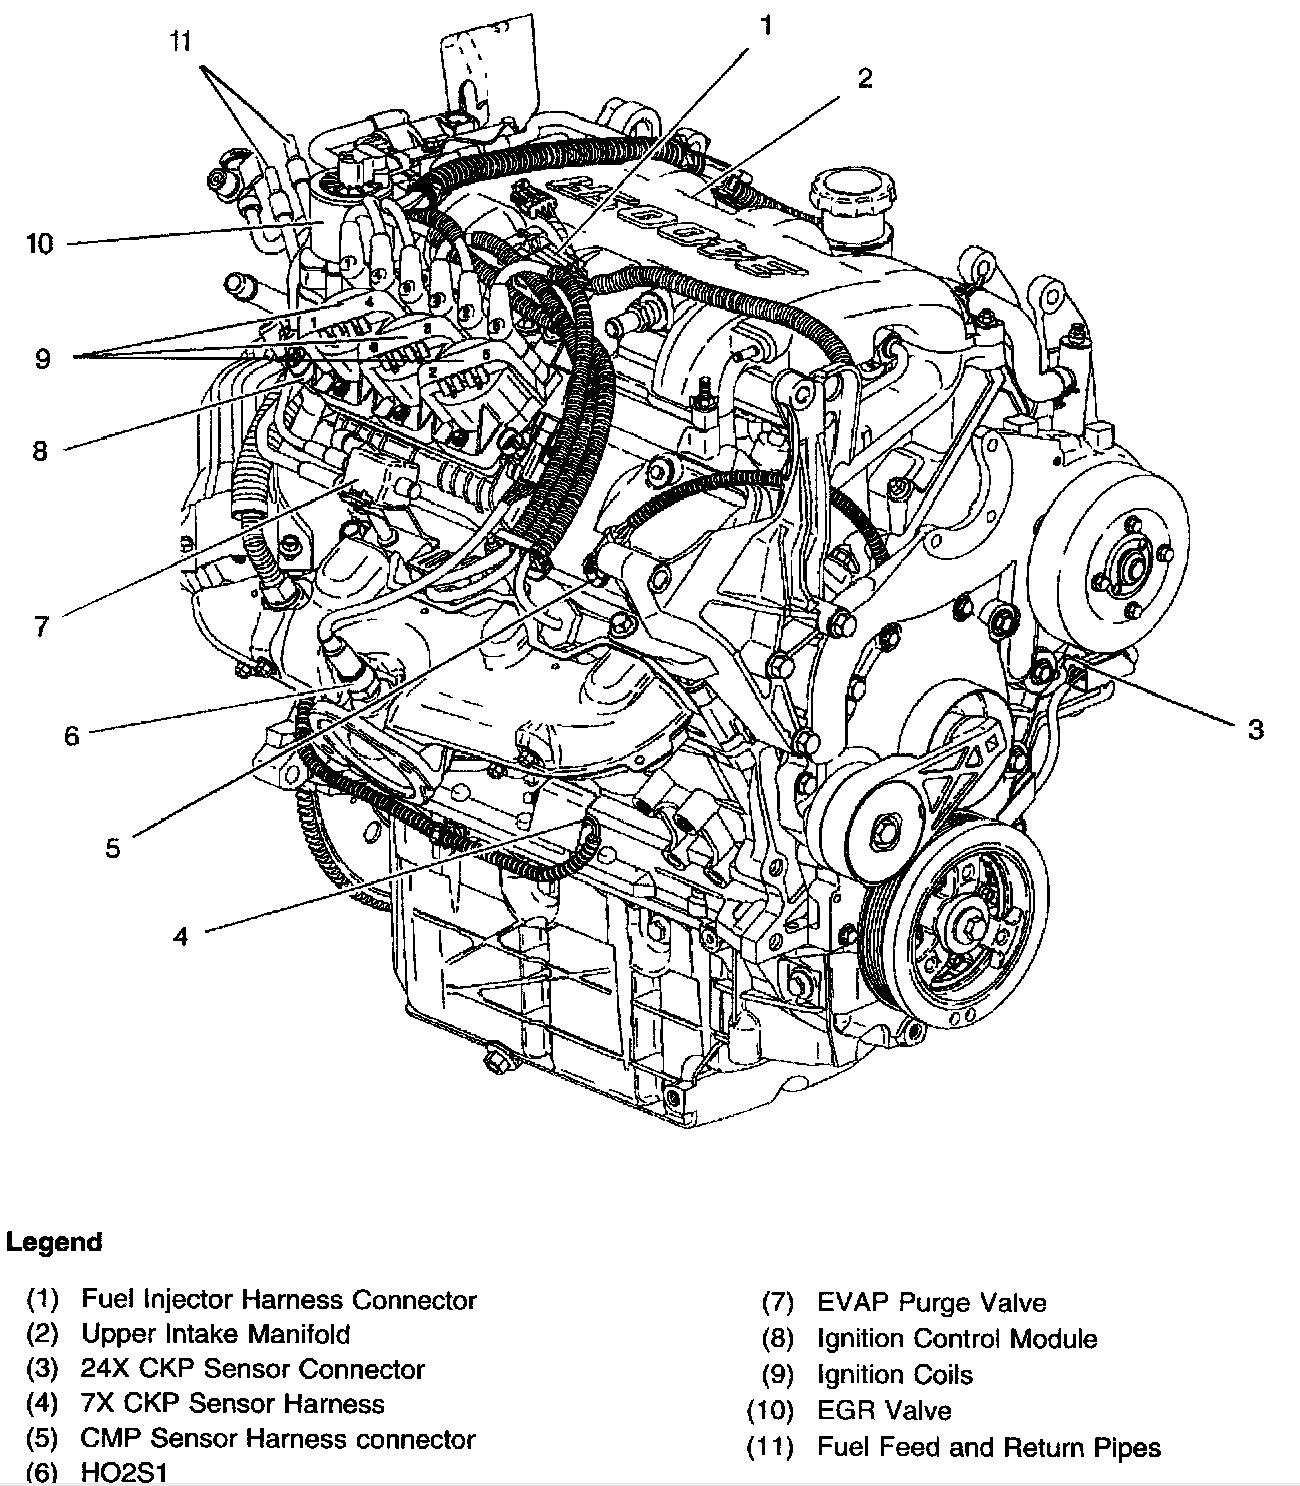 ford flex 3 8 v6 engine diagram schematics wiring diagrams u2022 rh  seniorlivinguniversity co 2000 Ford Windstar Heater Hose Diagram 2000 Ford  Windstar ...